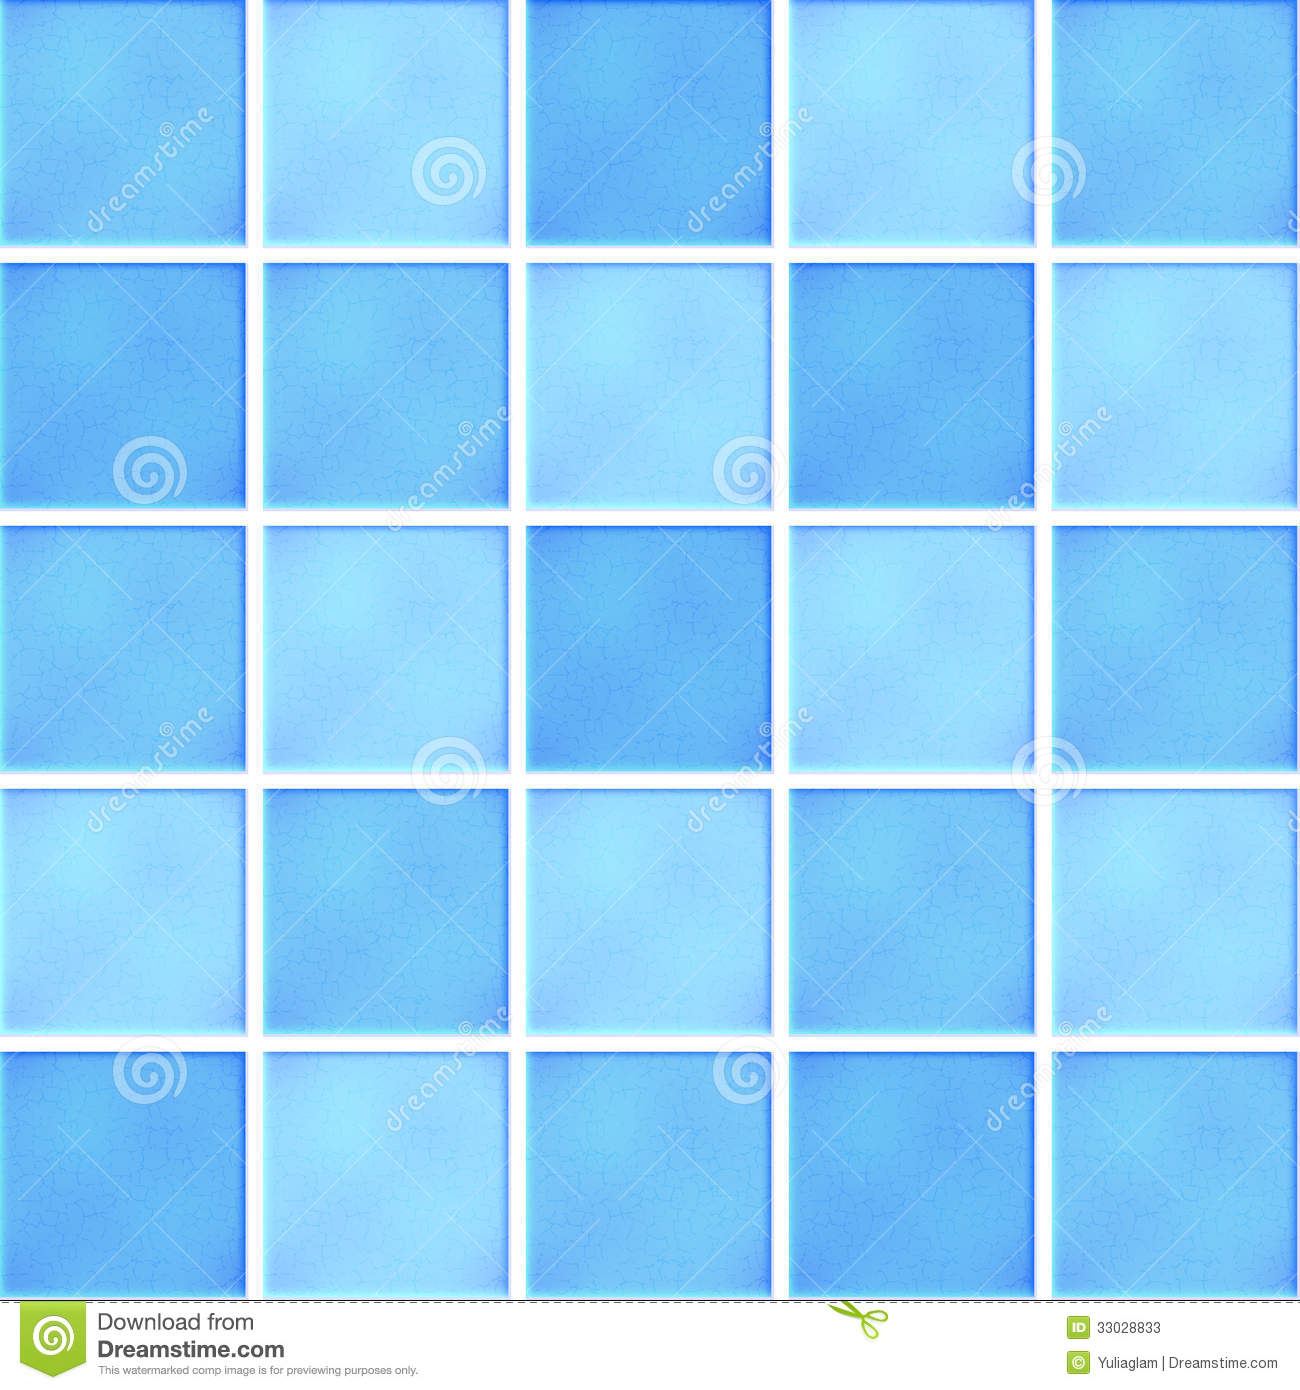 Clip Art of Floor Tile.